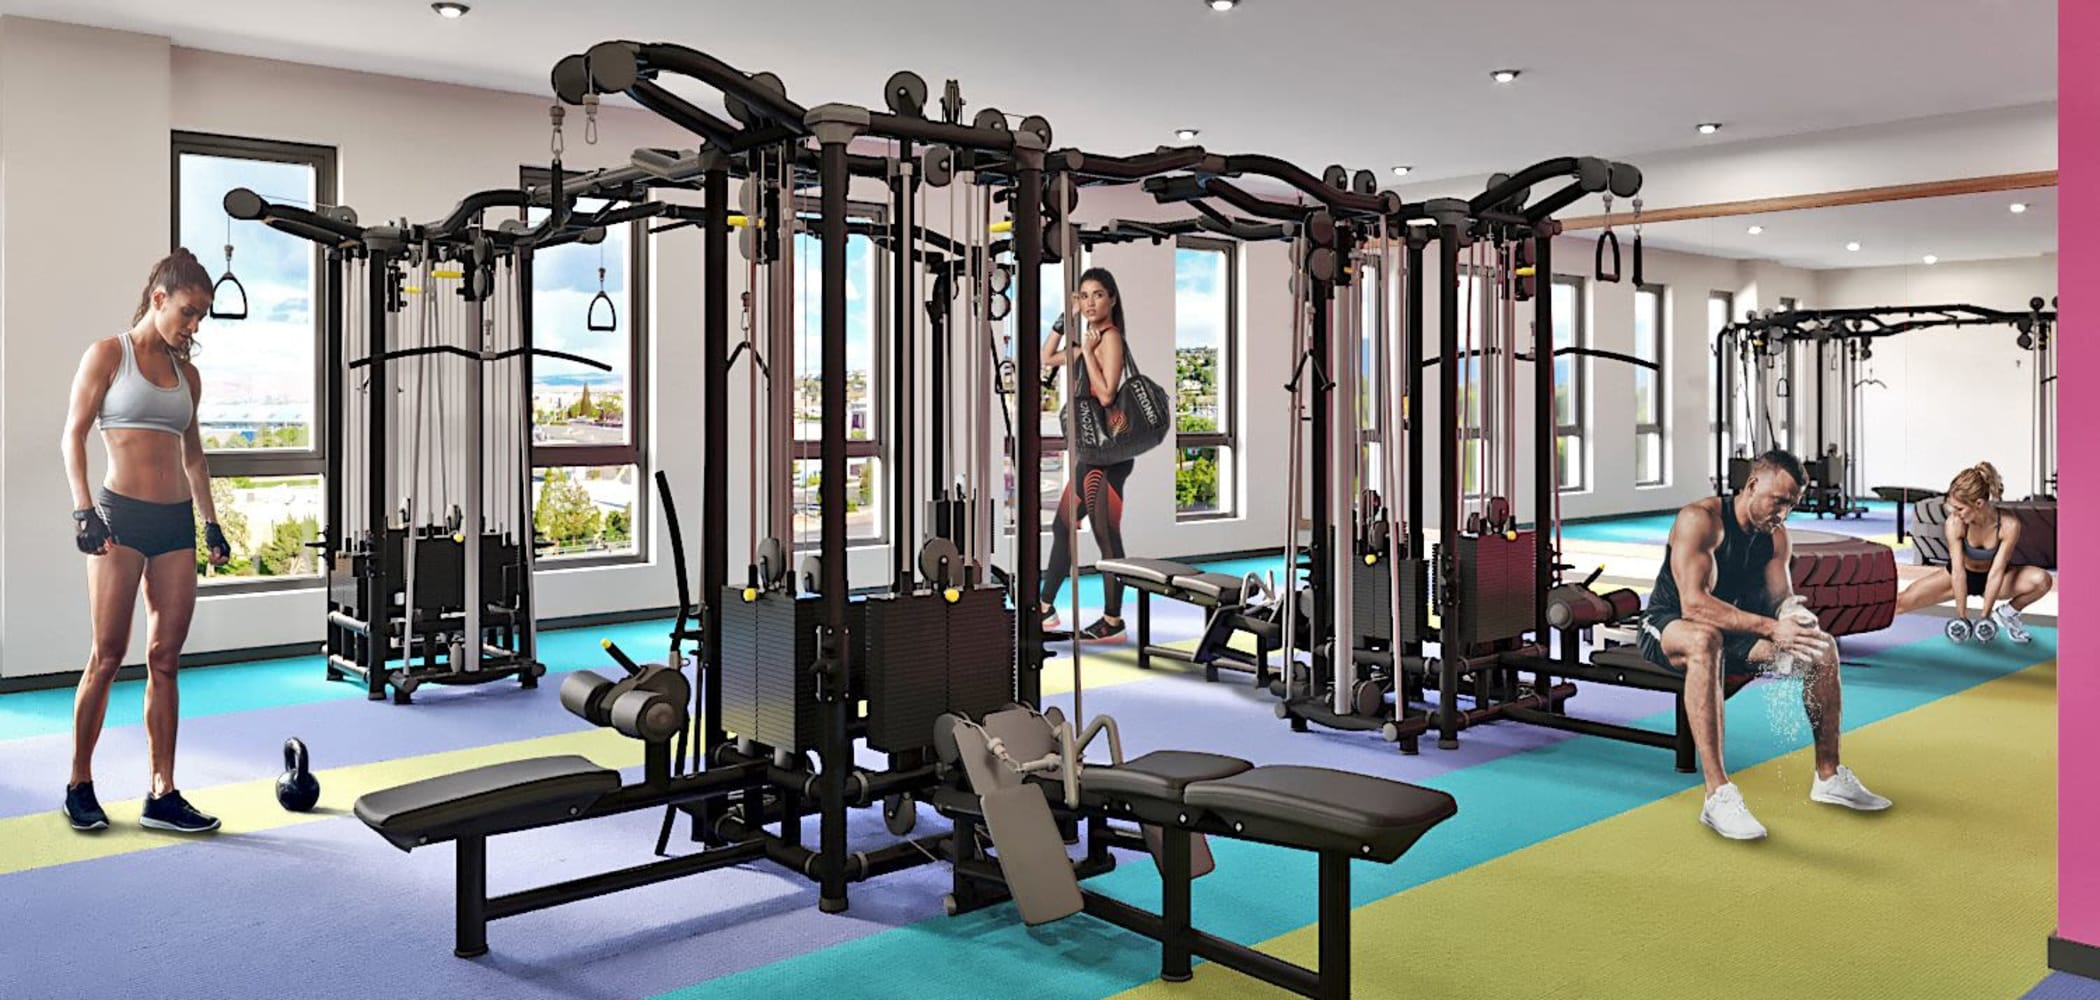 Fully equipped fitness center at UNCOMMON Reno in Reno, Nevada